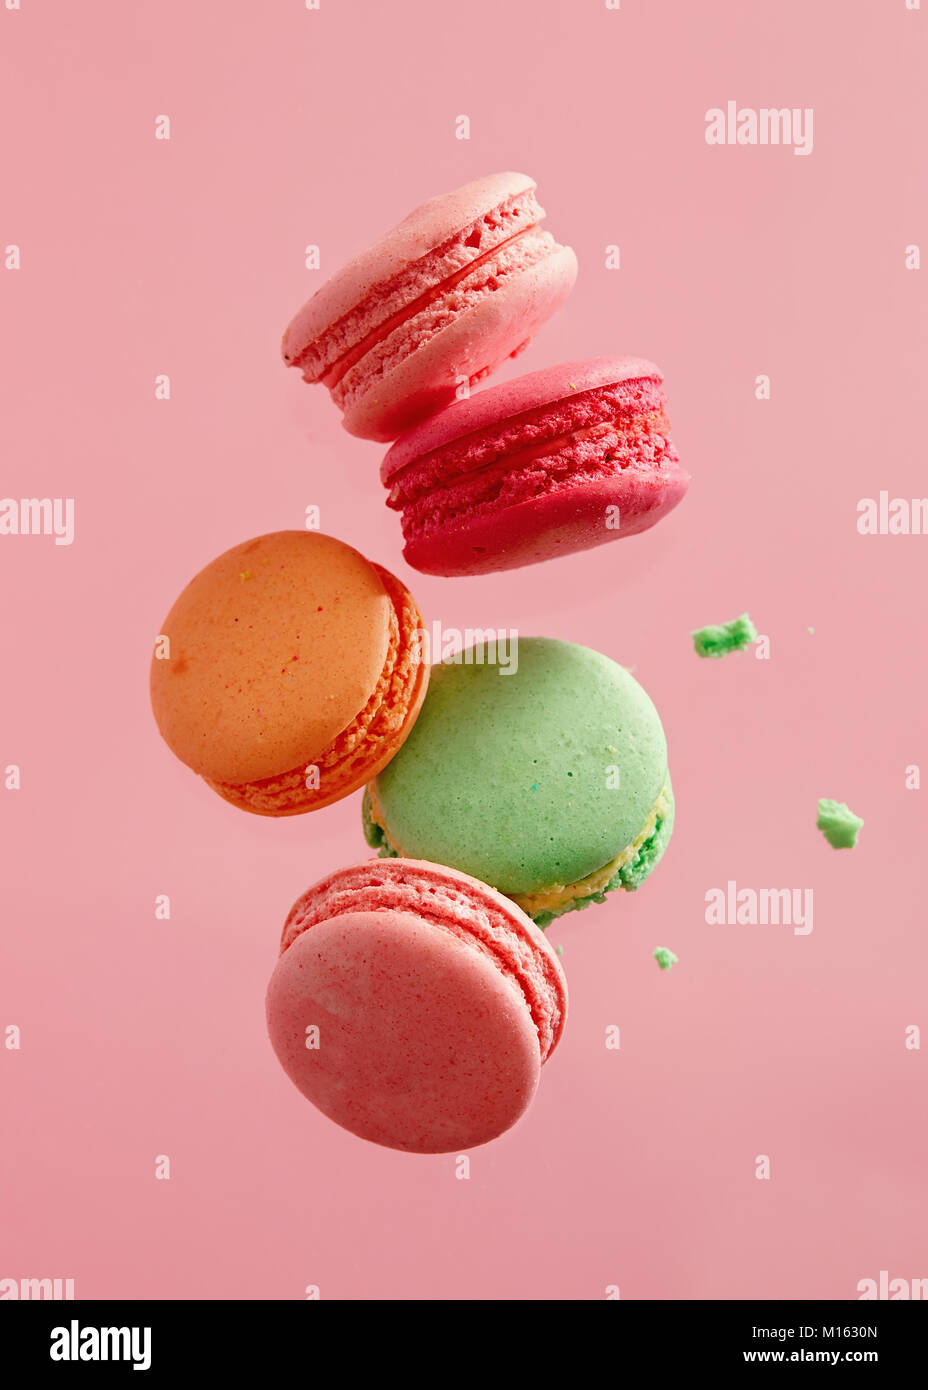 Different types of macaroons in motion falling on pink background. Sweet and colourful french macaroons falling - Stock Image